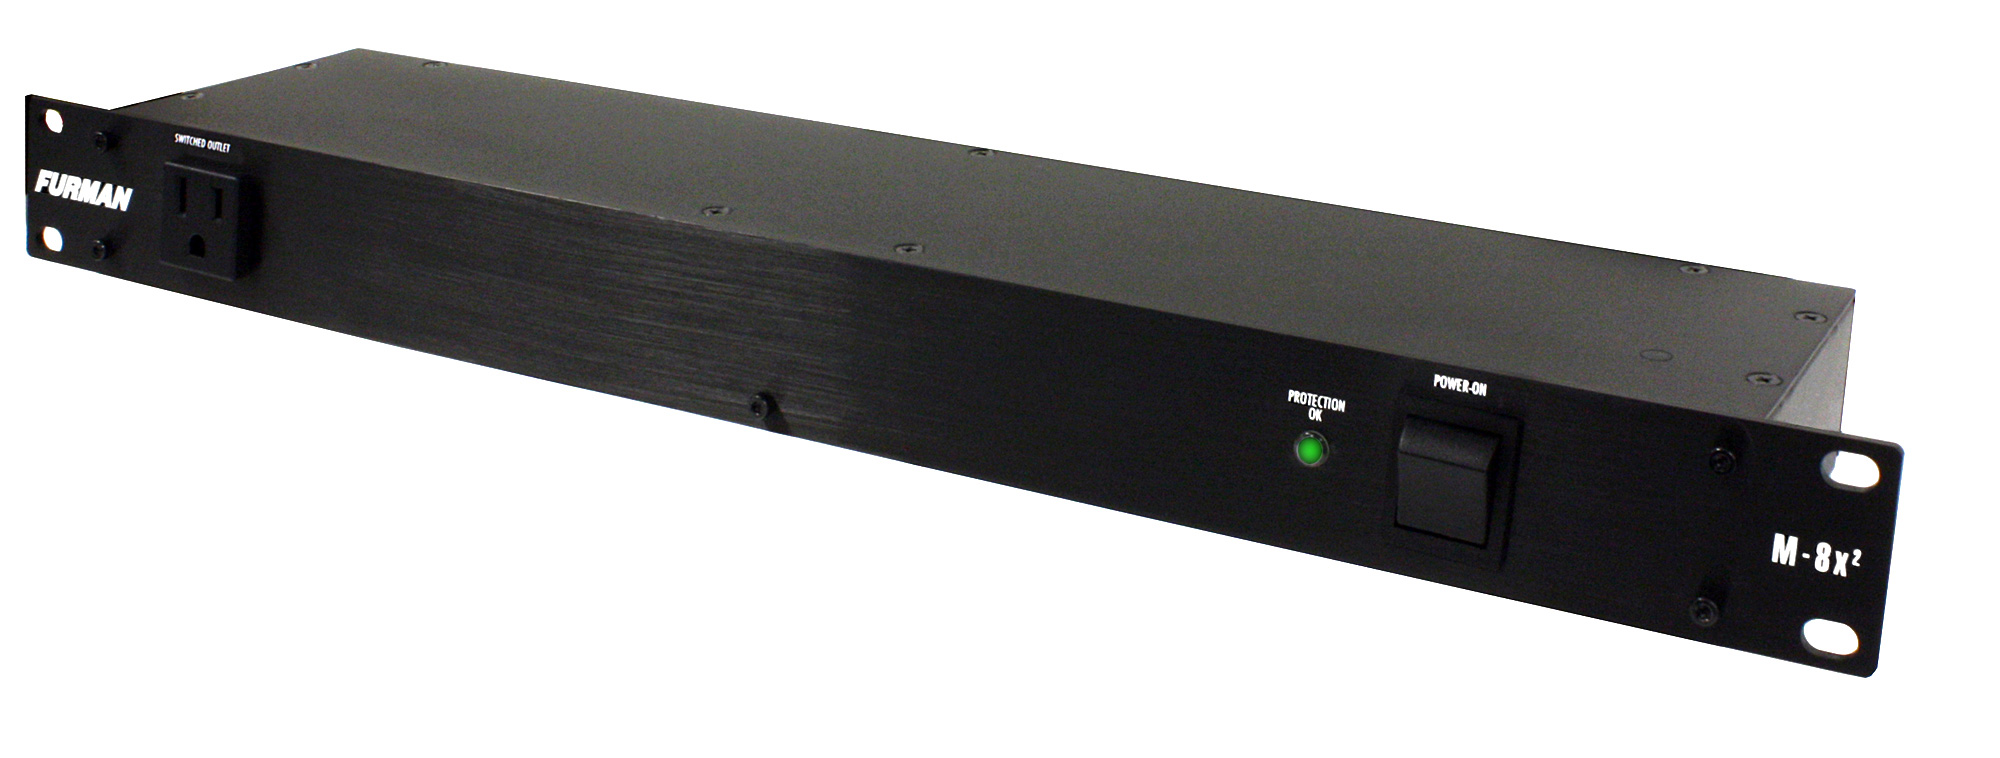 Furman M-8X2 15A Rackmount Power Conditioner w/8 Rear Switched Outlets